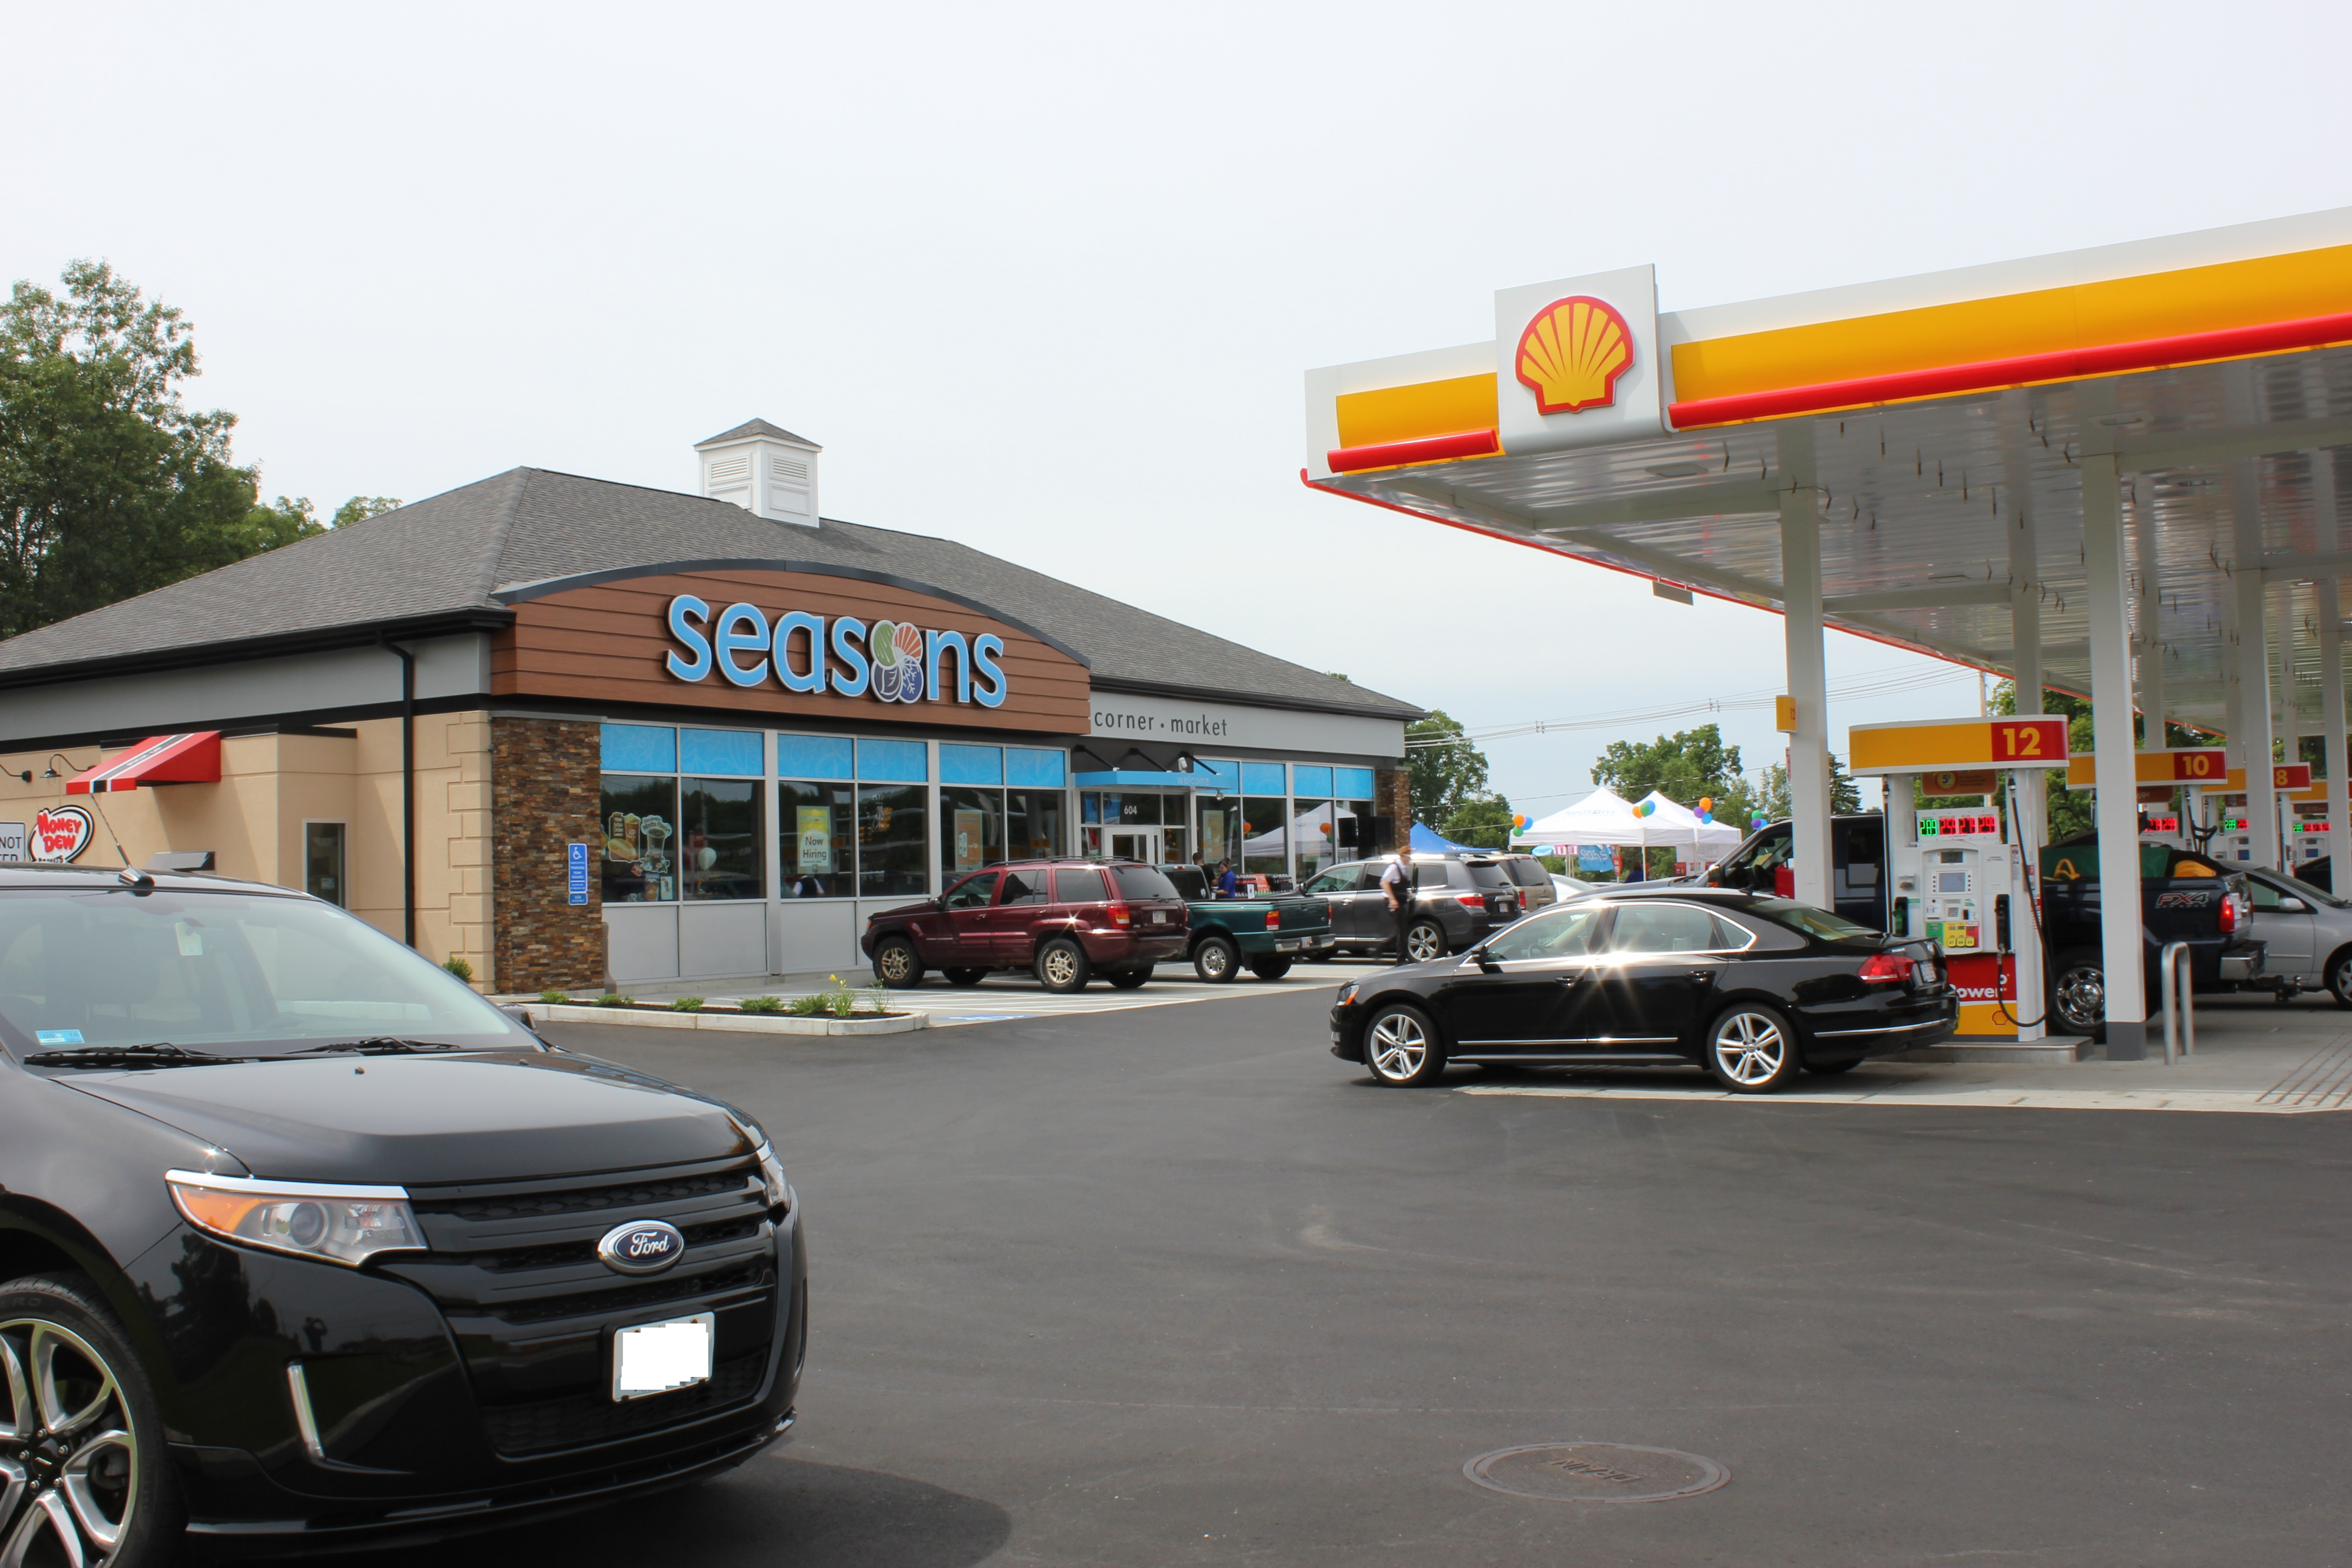 Seasons Corner Market Convenience Stores Shell Gas Stations